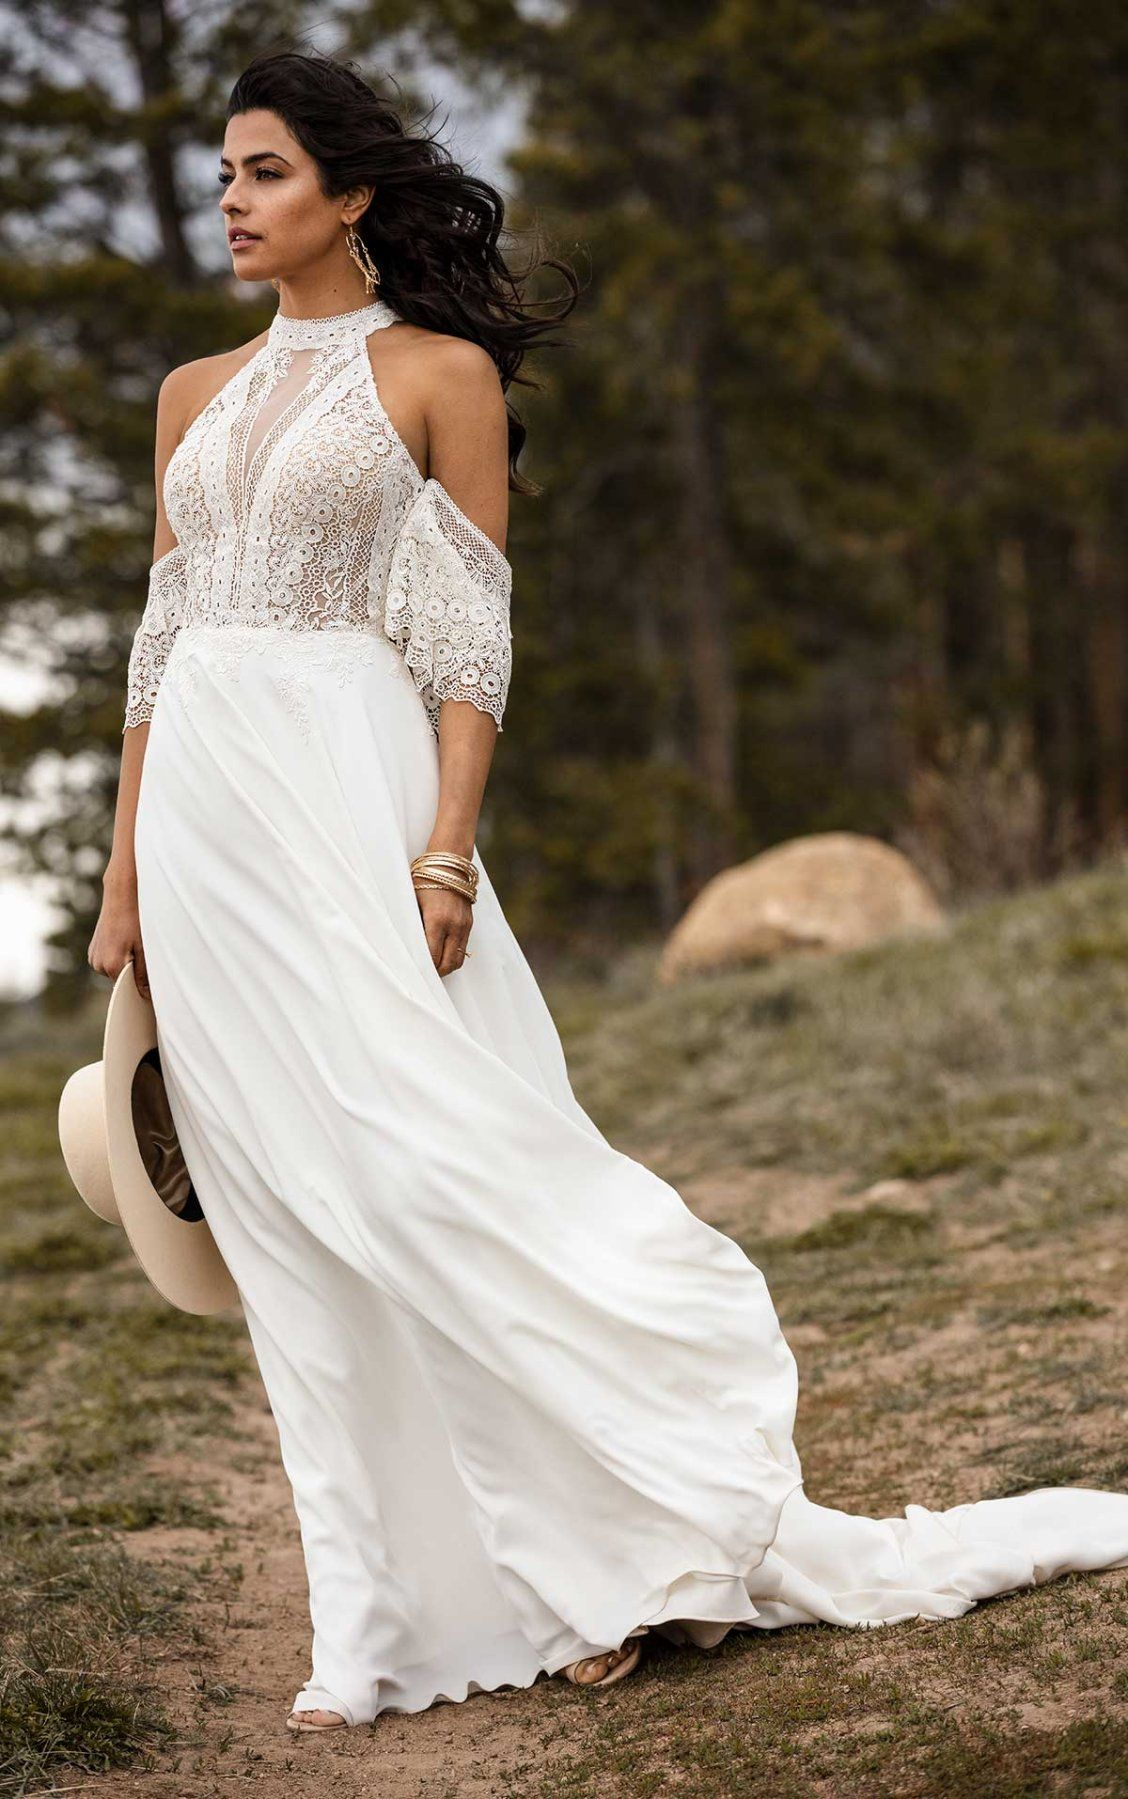 Simple Bohemian Wedding Dress With Removable Arm Cuffs All Who Wander Wedding Dresses Boho Wedding Dress Bohemian Wedding Dresses [ 1799 x 1128 Pixel ]